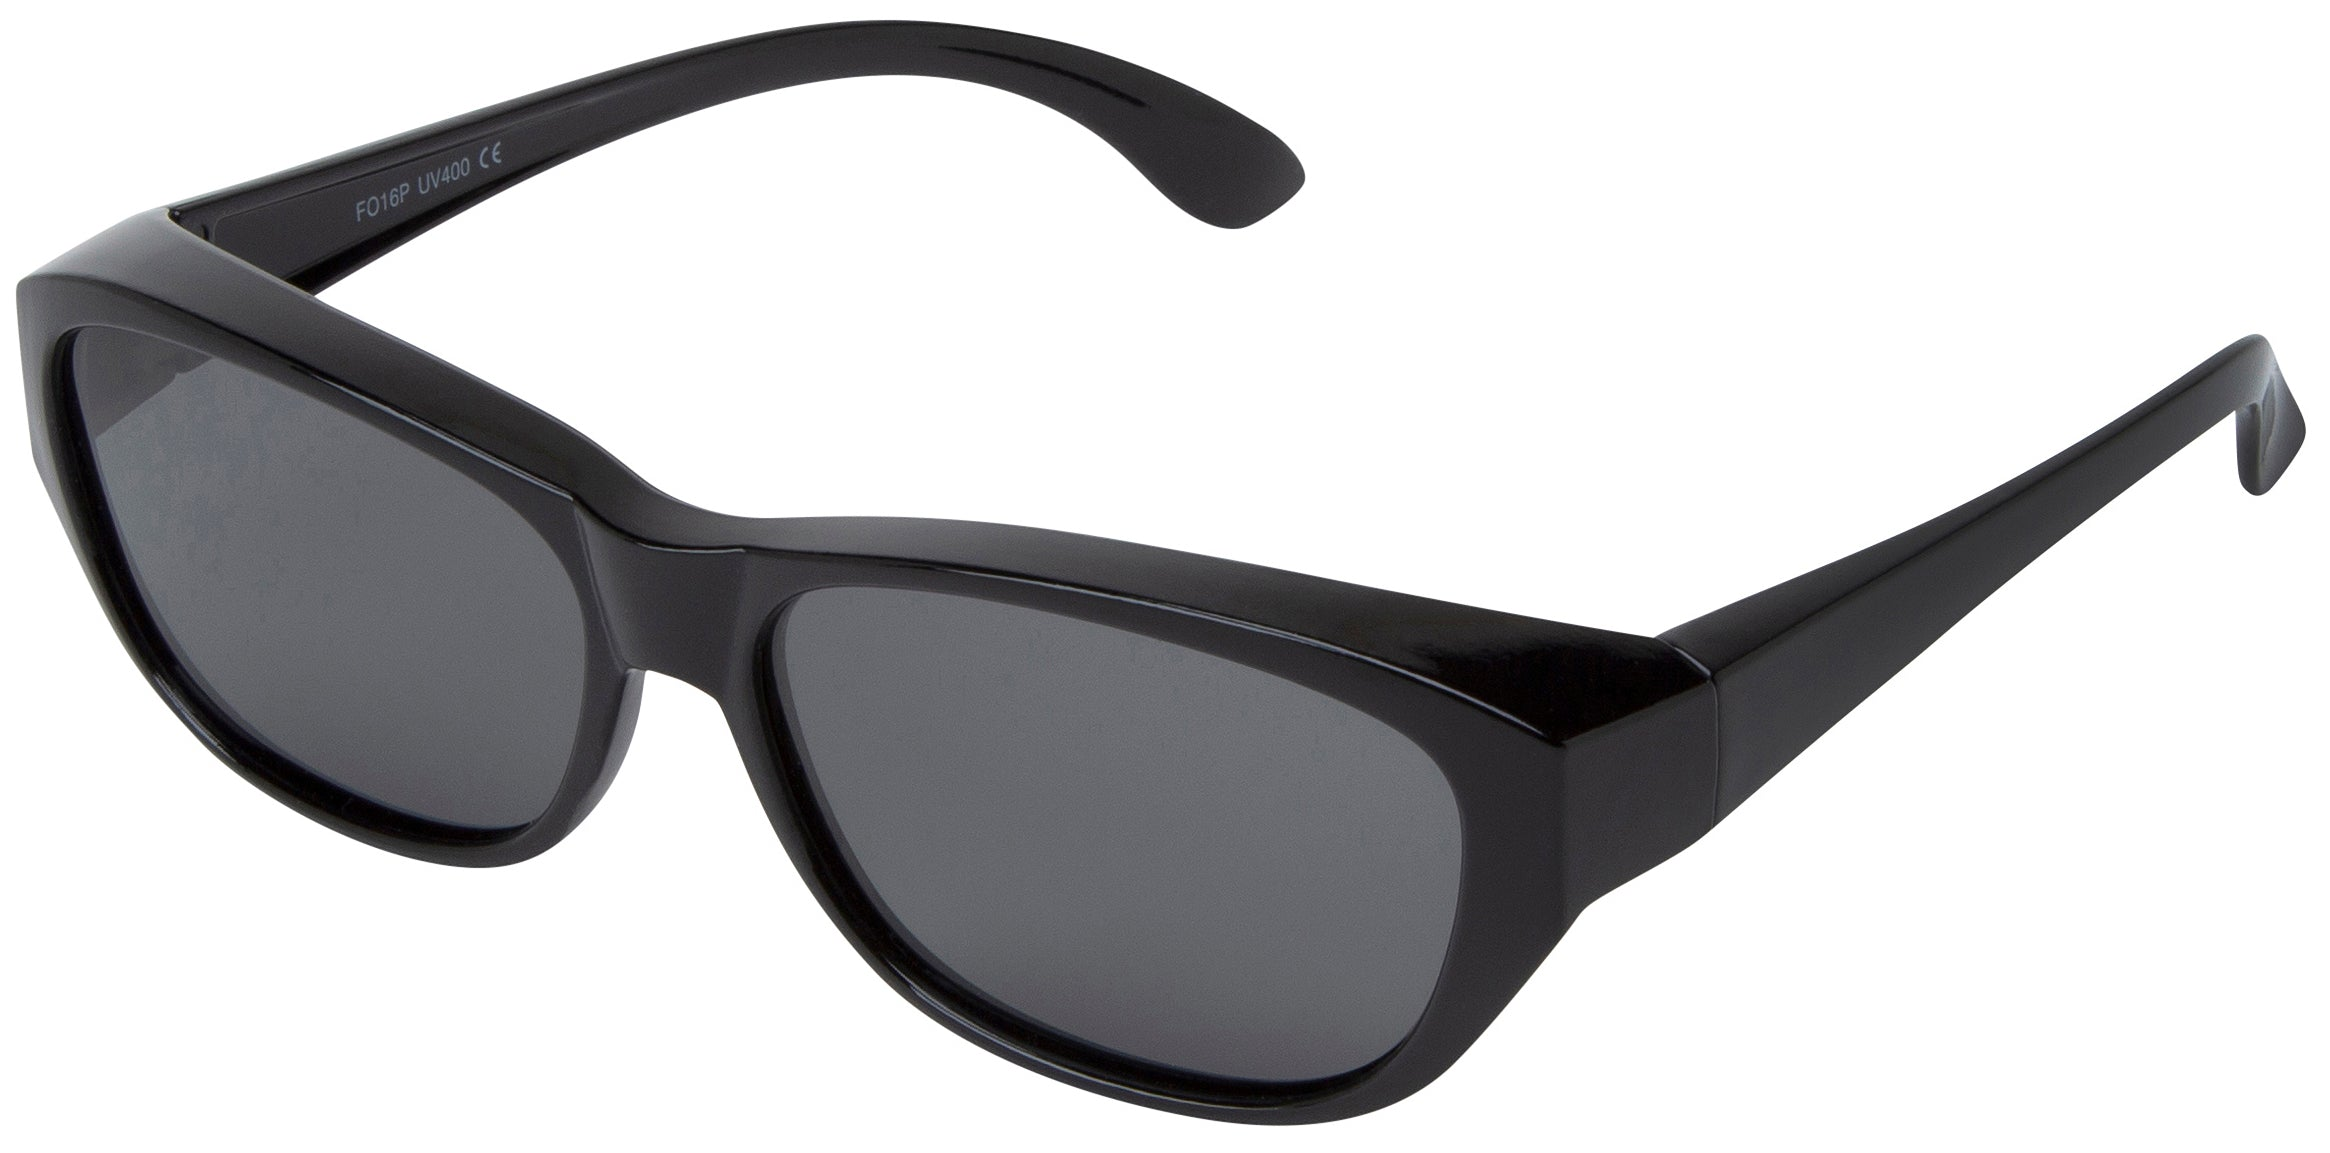 FO16P - Polarized Shaded Sunglasses - Fit Over Eyewear